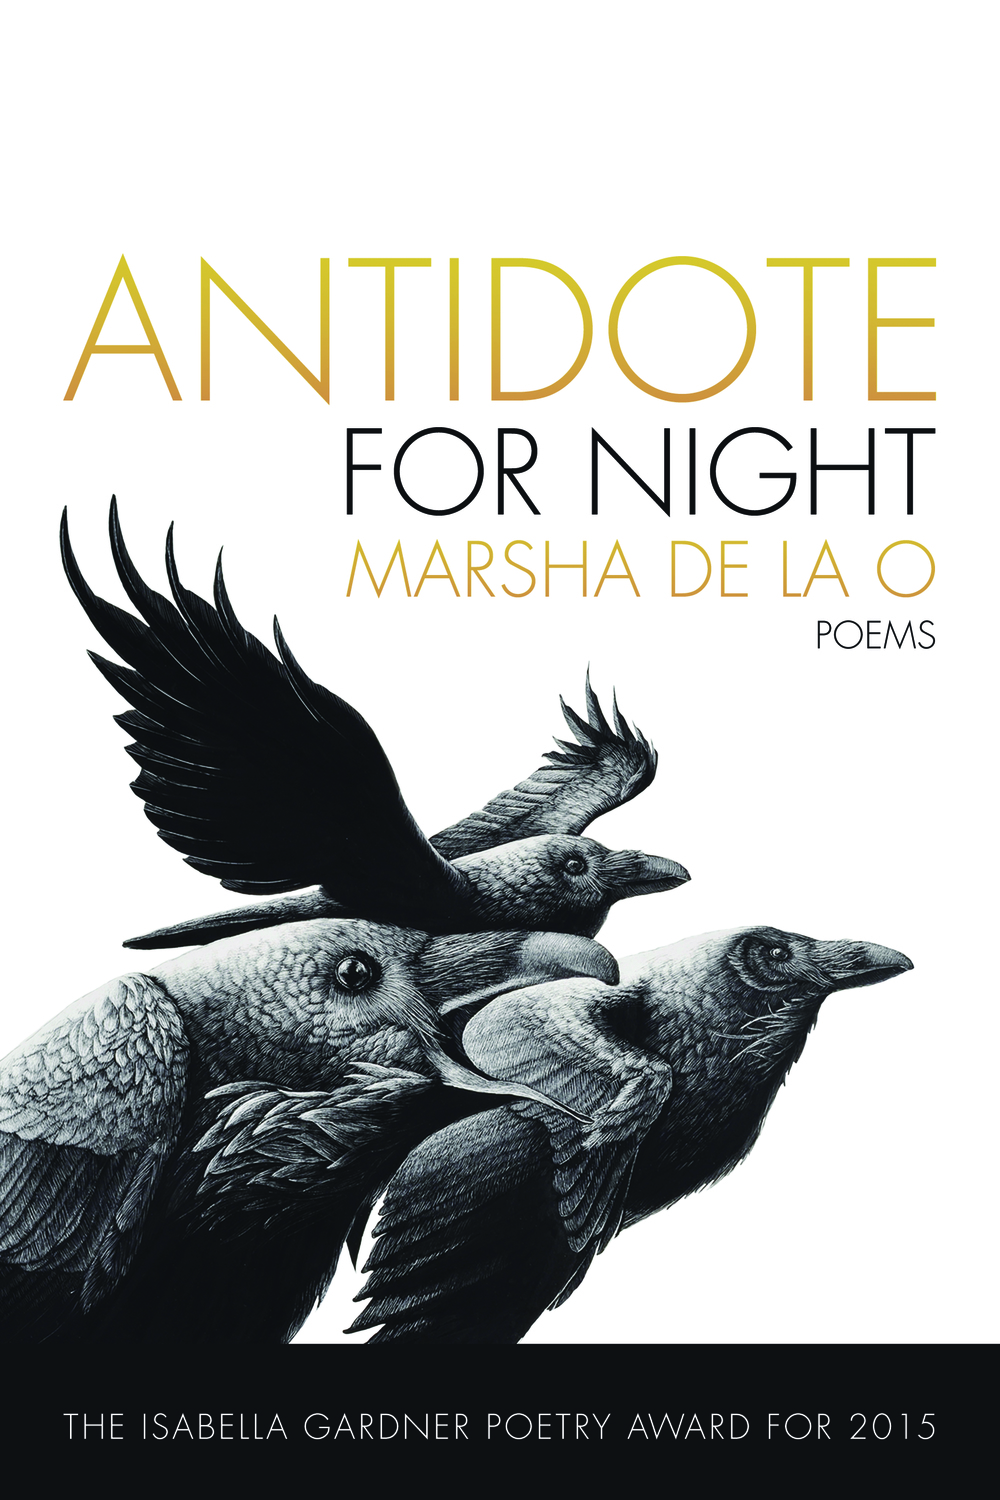 Set in present-day Southern California, Antidote for Night is a heartbreak lyric, a corrido, a love song to California's city lights and far-flung outskirts—the San Diego backcountry, the Central Valley, the Inland Empire, and the Mojave Desert. A book of remedies for dire circumstances, rock-bottom realities, and the unrelenting weight of mortality, specifically among young men of color, this collection shows what it takes to see in darkness. Marsha de la O's voice is a kind of free jazz, musically rich with L.A. noir and the vastness of metropolitan Southern California.